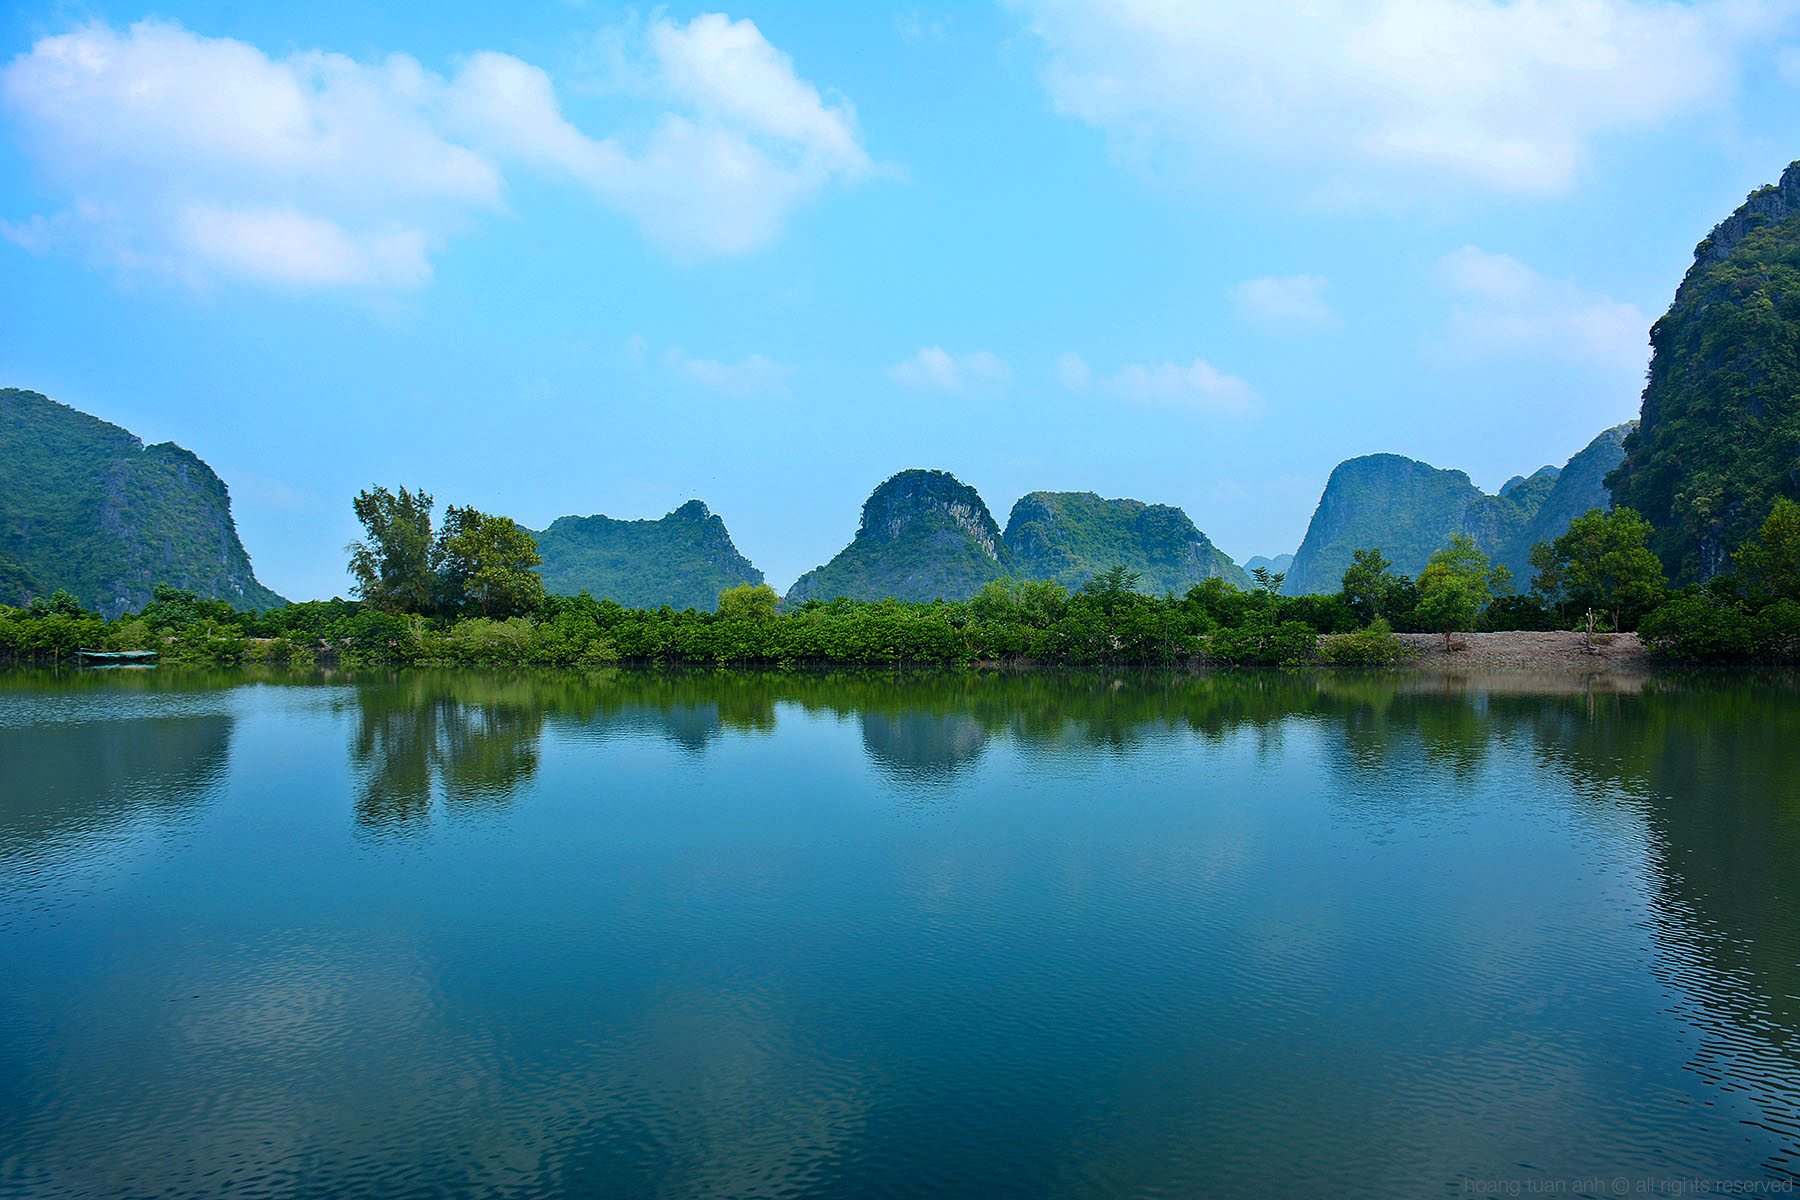 Eco-Friendly Lan Ha Bay Cruise with Home Stay in Viet Hai village and Phu Long Ecolife Village